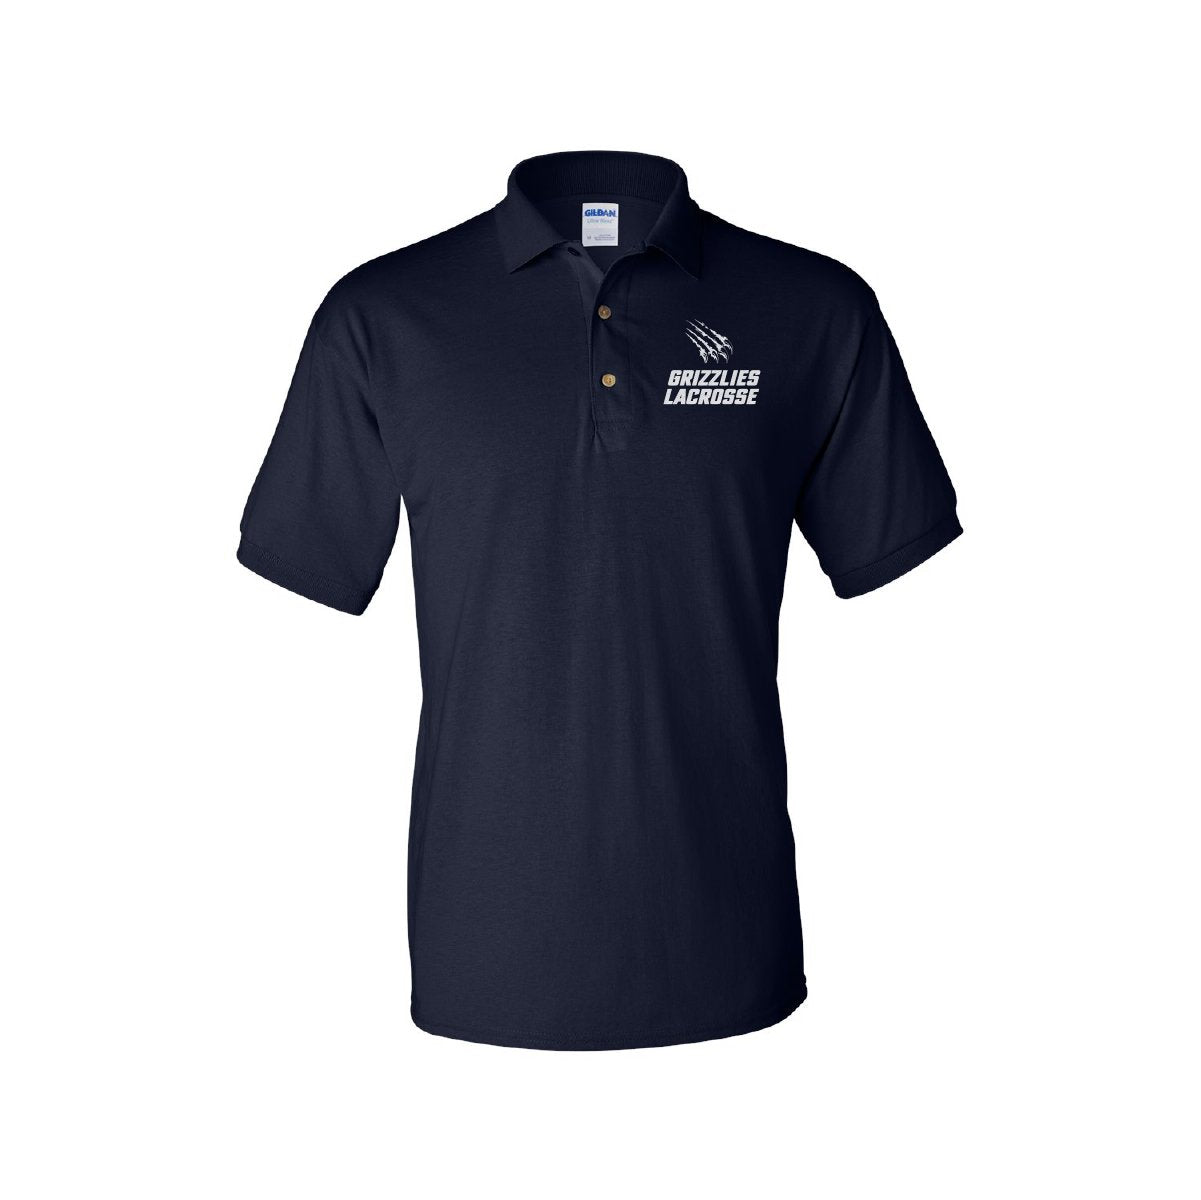 Men's Grizzlies Lacrosse Embroidered Polo